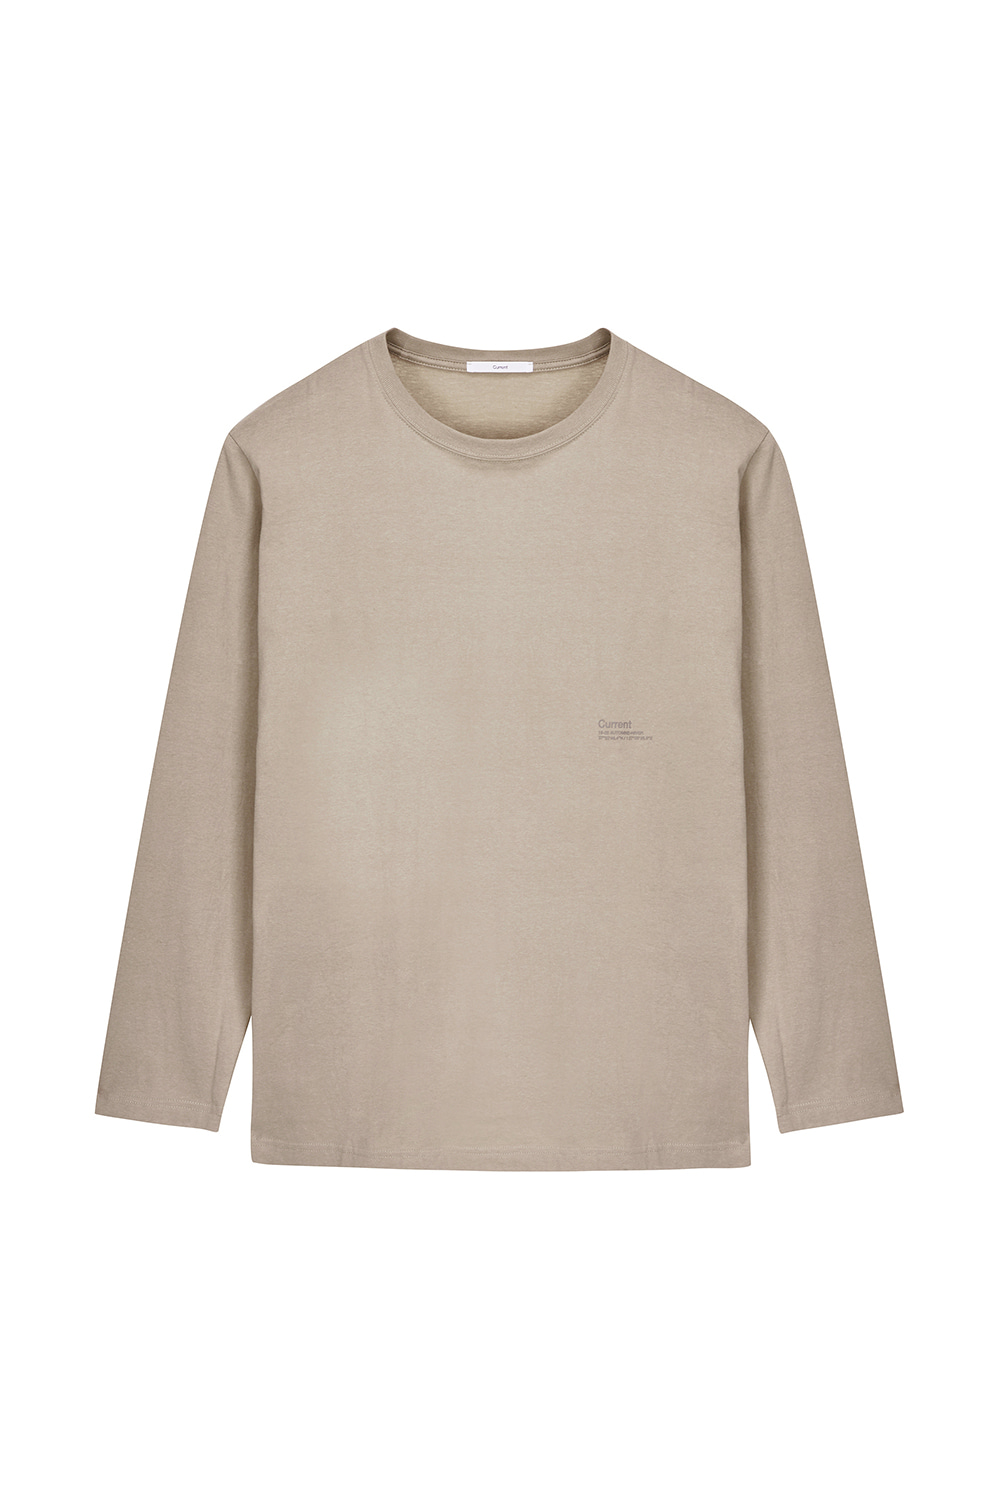 Logo Long Sleeve Men [Beige]